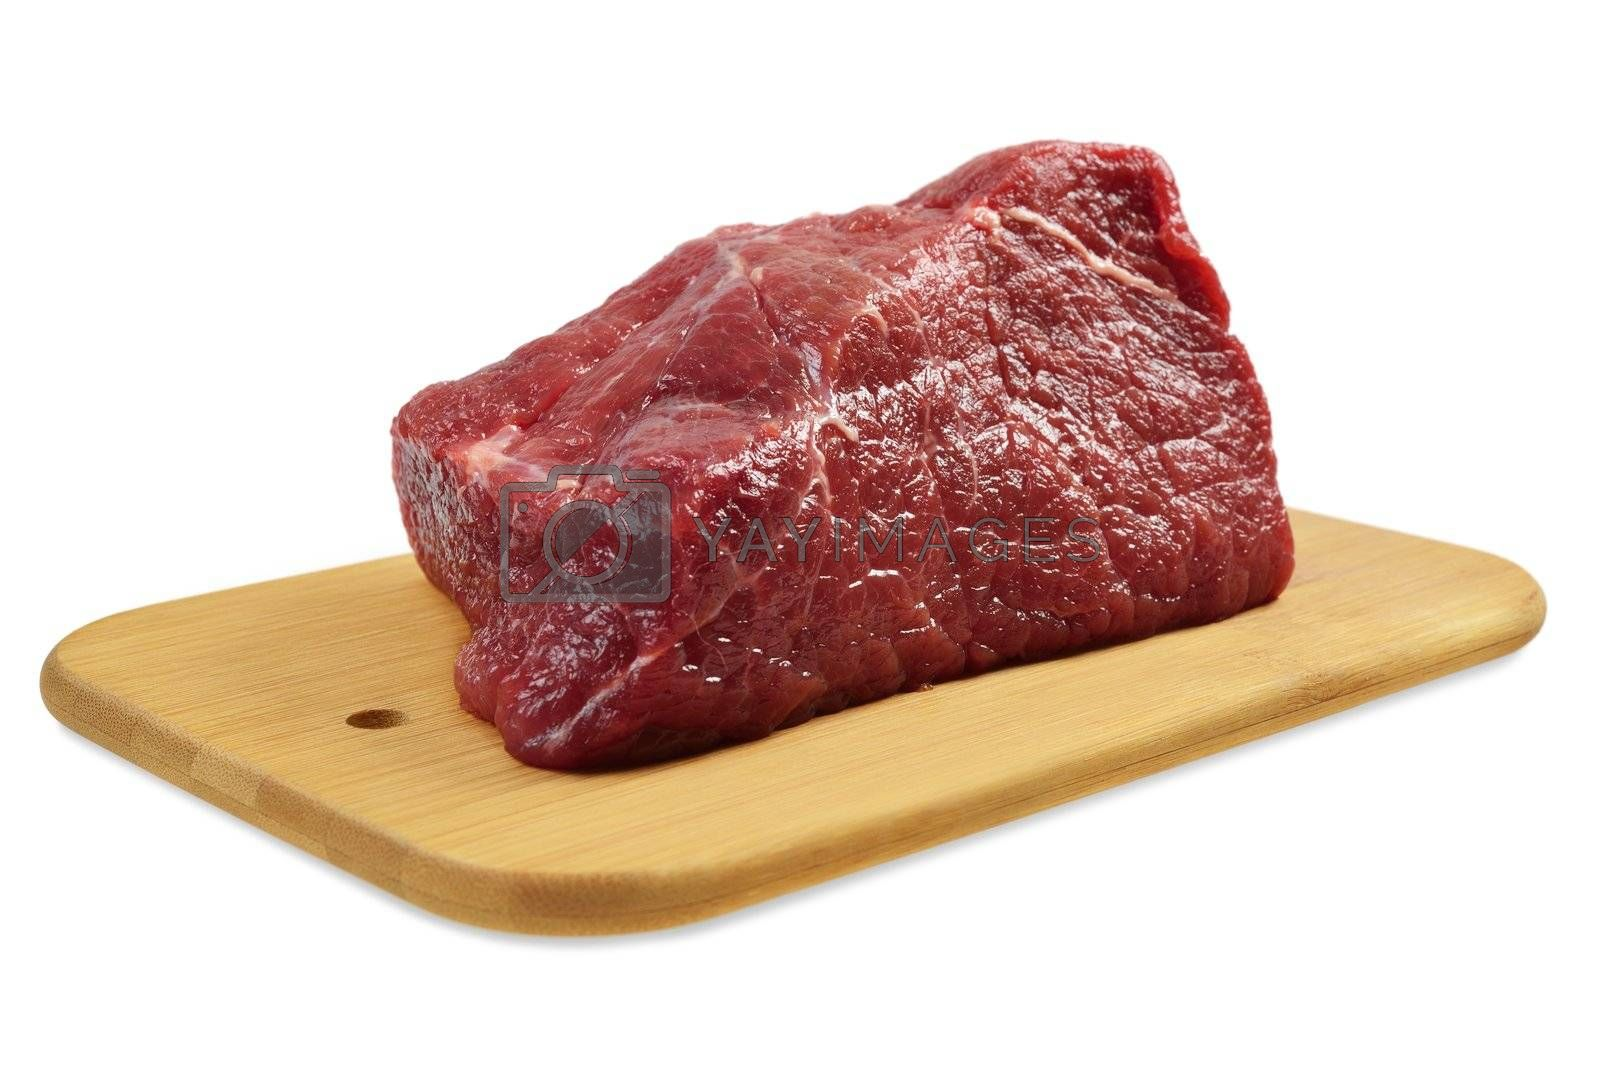 Beef on a wooden board. Isolated on white